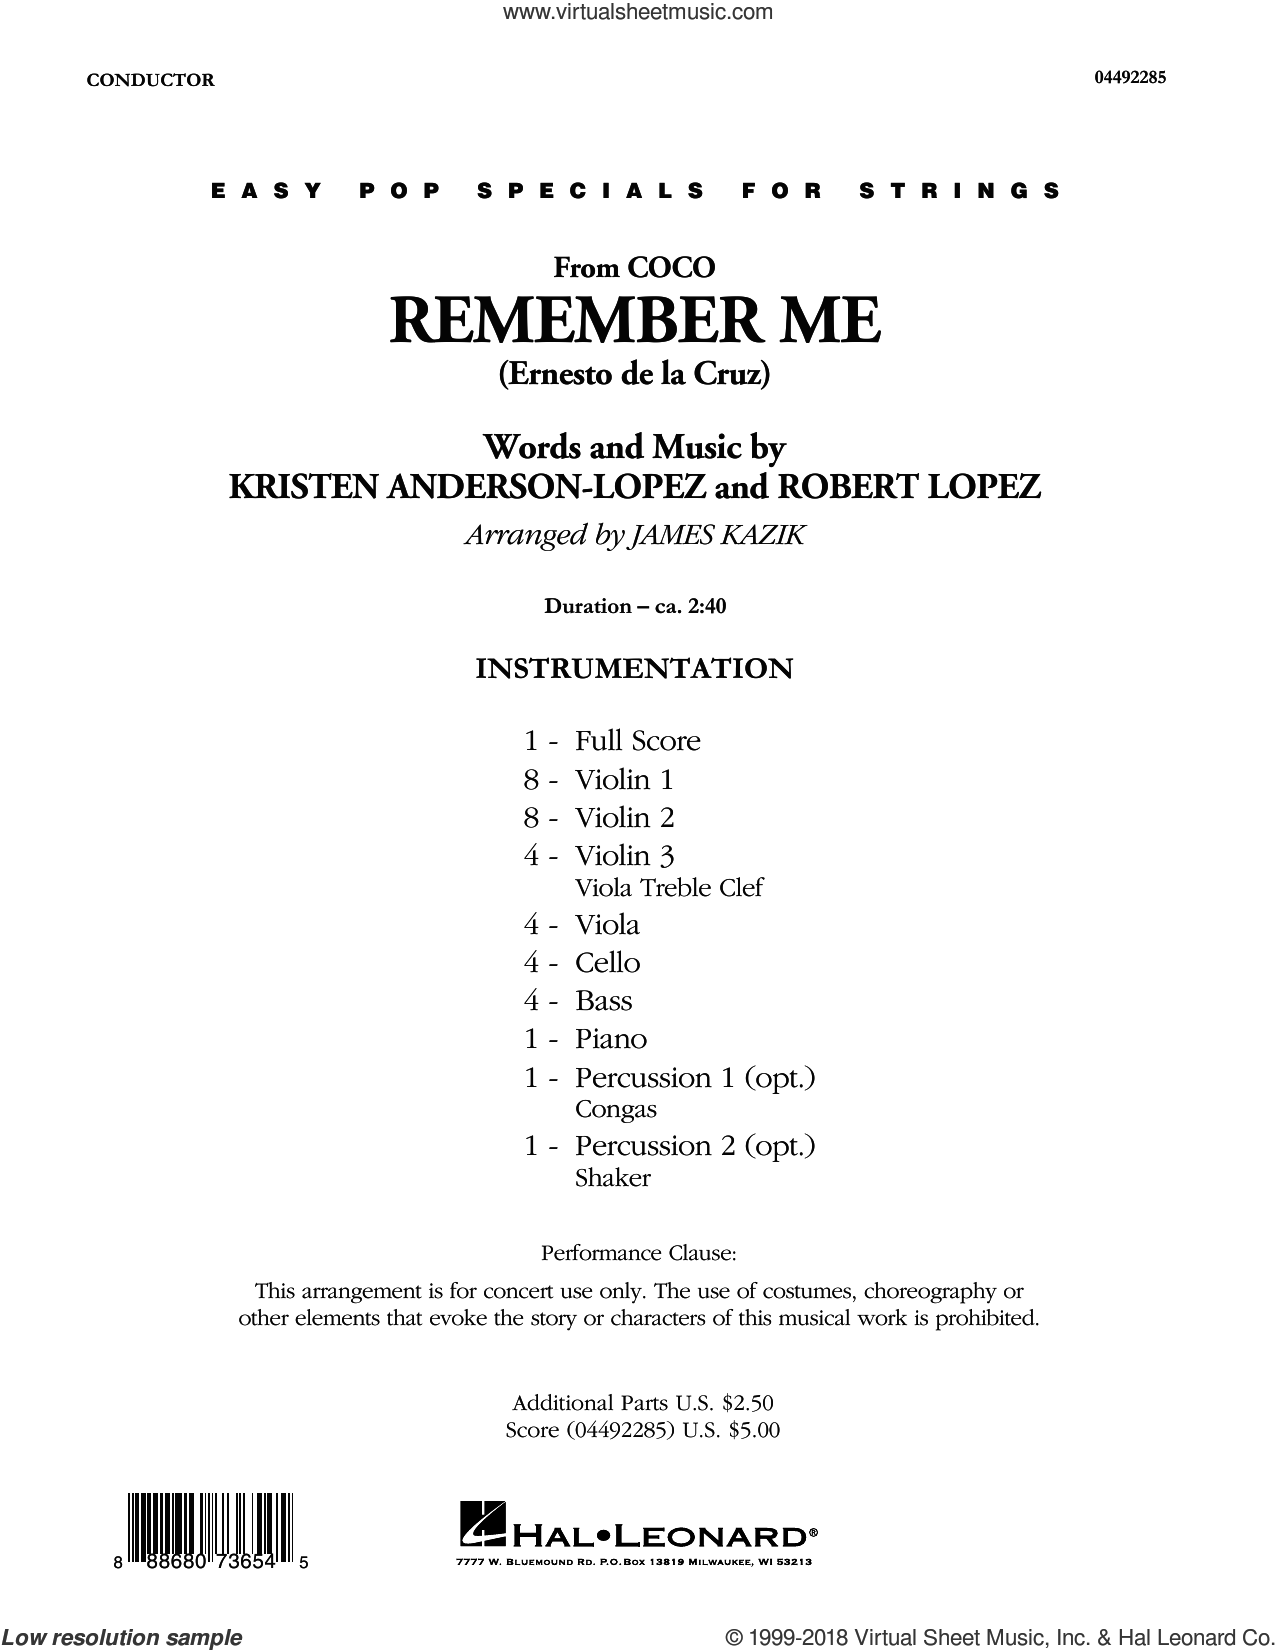 Remember Me (from Coco) (arr. James Kazik) (COMPLETE) sheet music for orchestra by Robert Lopez, James Kazik, Kristen Anderson-Lopez and Kristen Anderson-Lopez & Robert Lopez, intermediate skill level